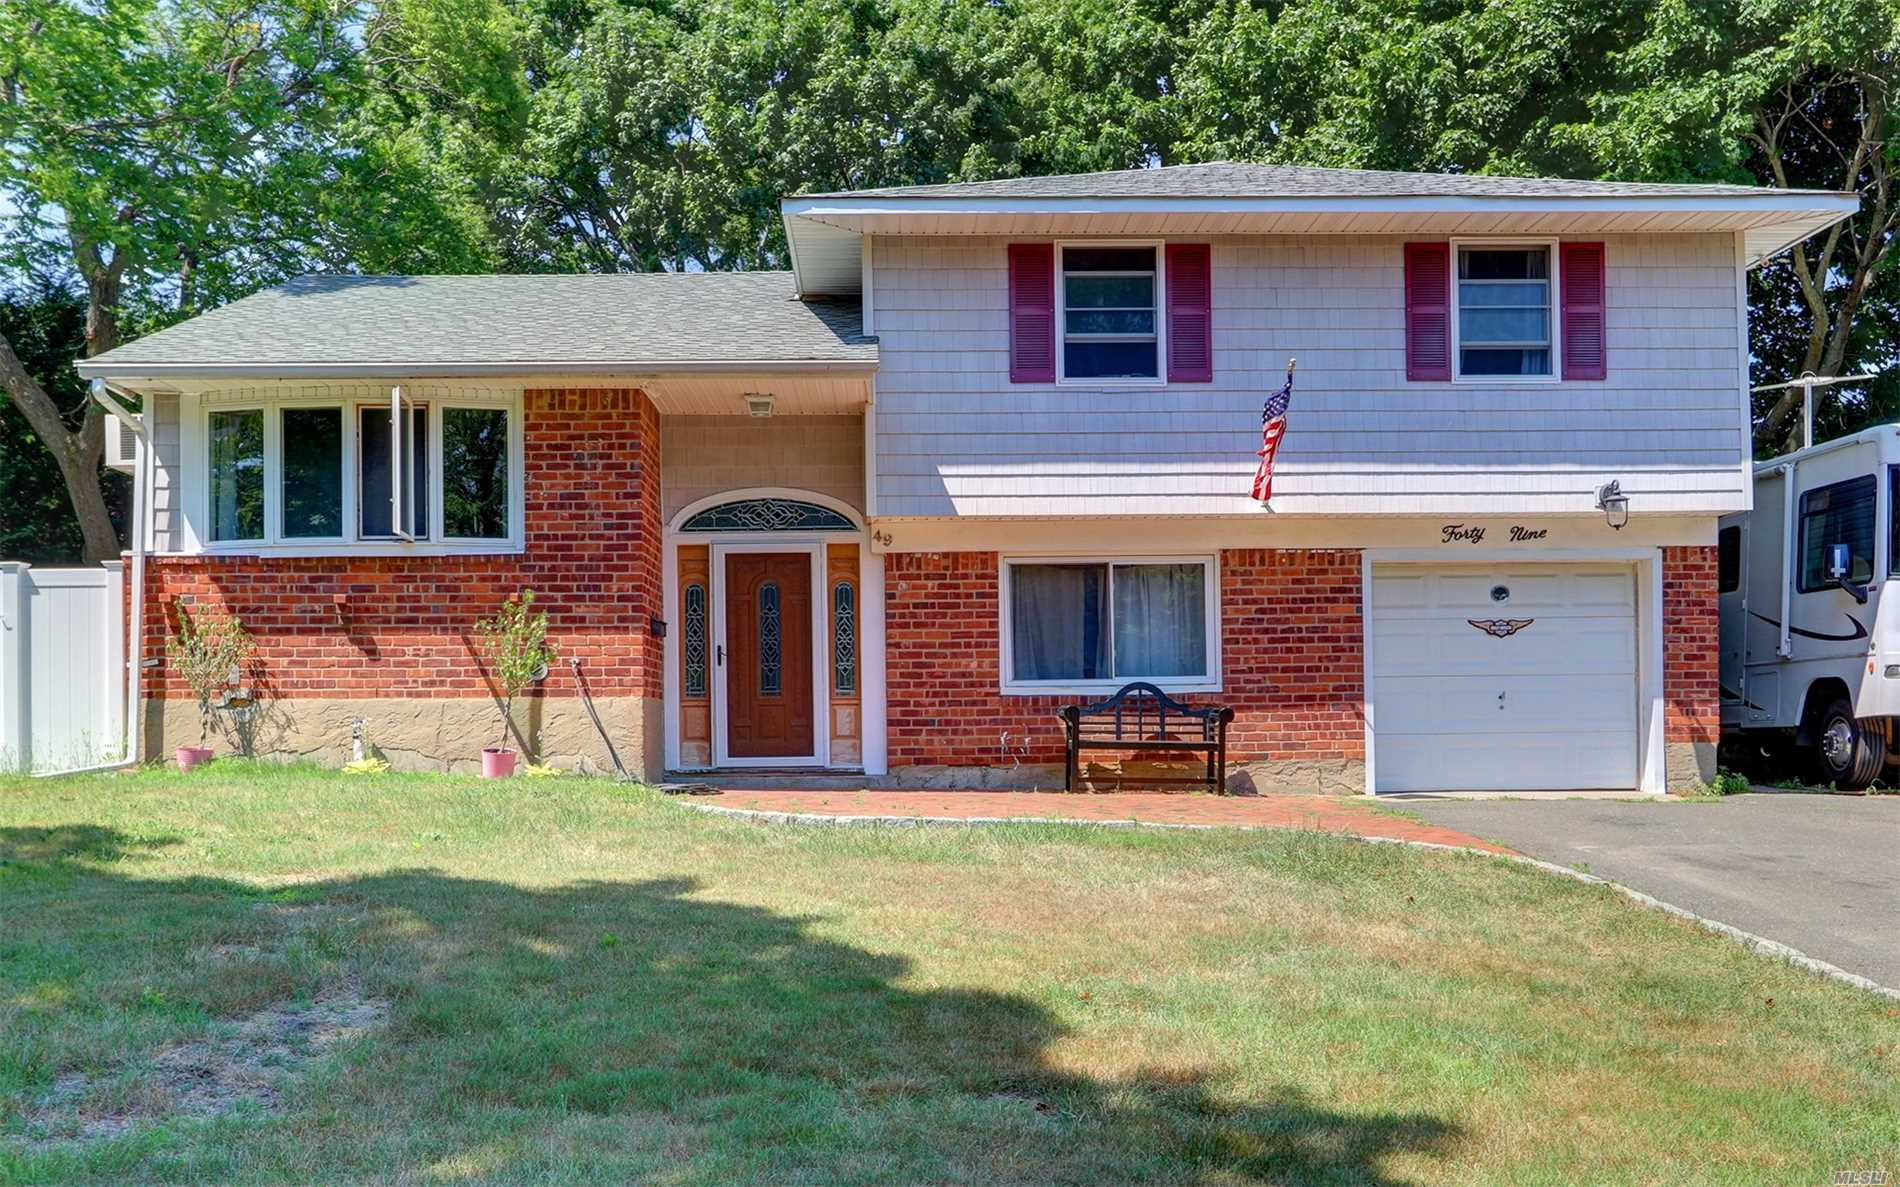 Lovely Split Level Home Hard Wood Floors Throughout, Nice Fenced In Property,  Updates Include New Gas Heating System, Anderson Windows, Roof,  And Much More. Tree Lined Residential Street With Sidewalks. Close To Parkways, . Shopping And Beach. Possible Mother /Daughter With Permits.